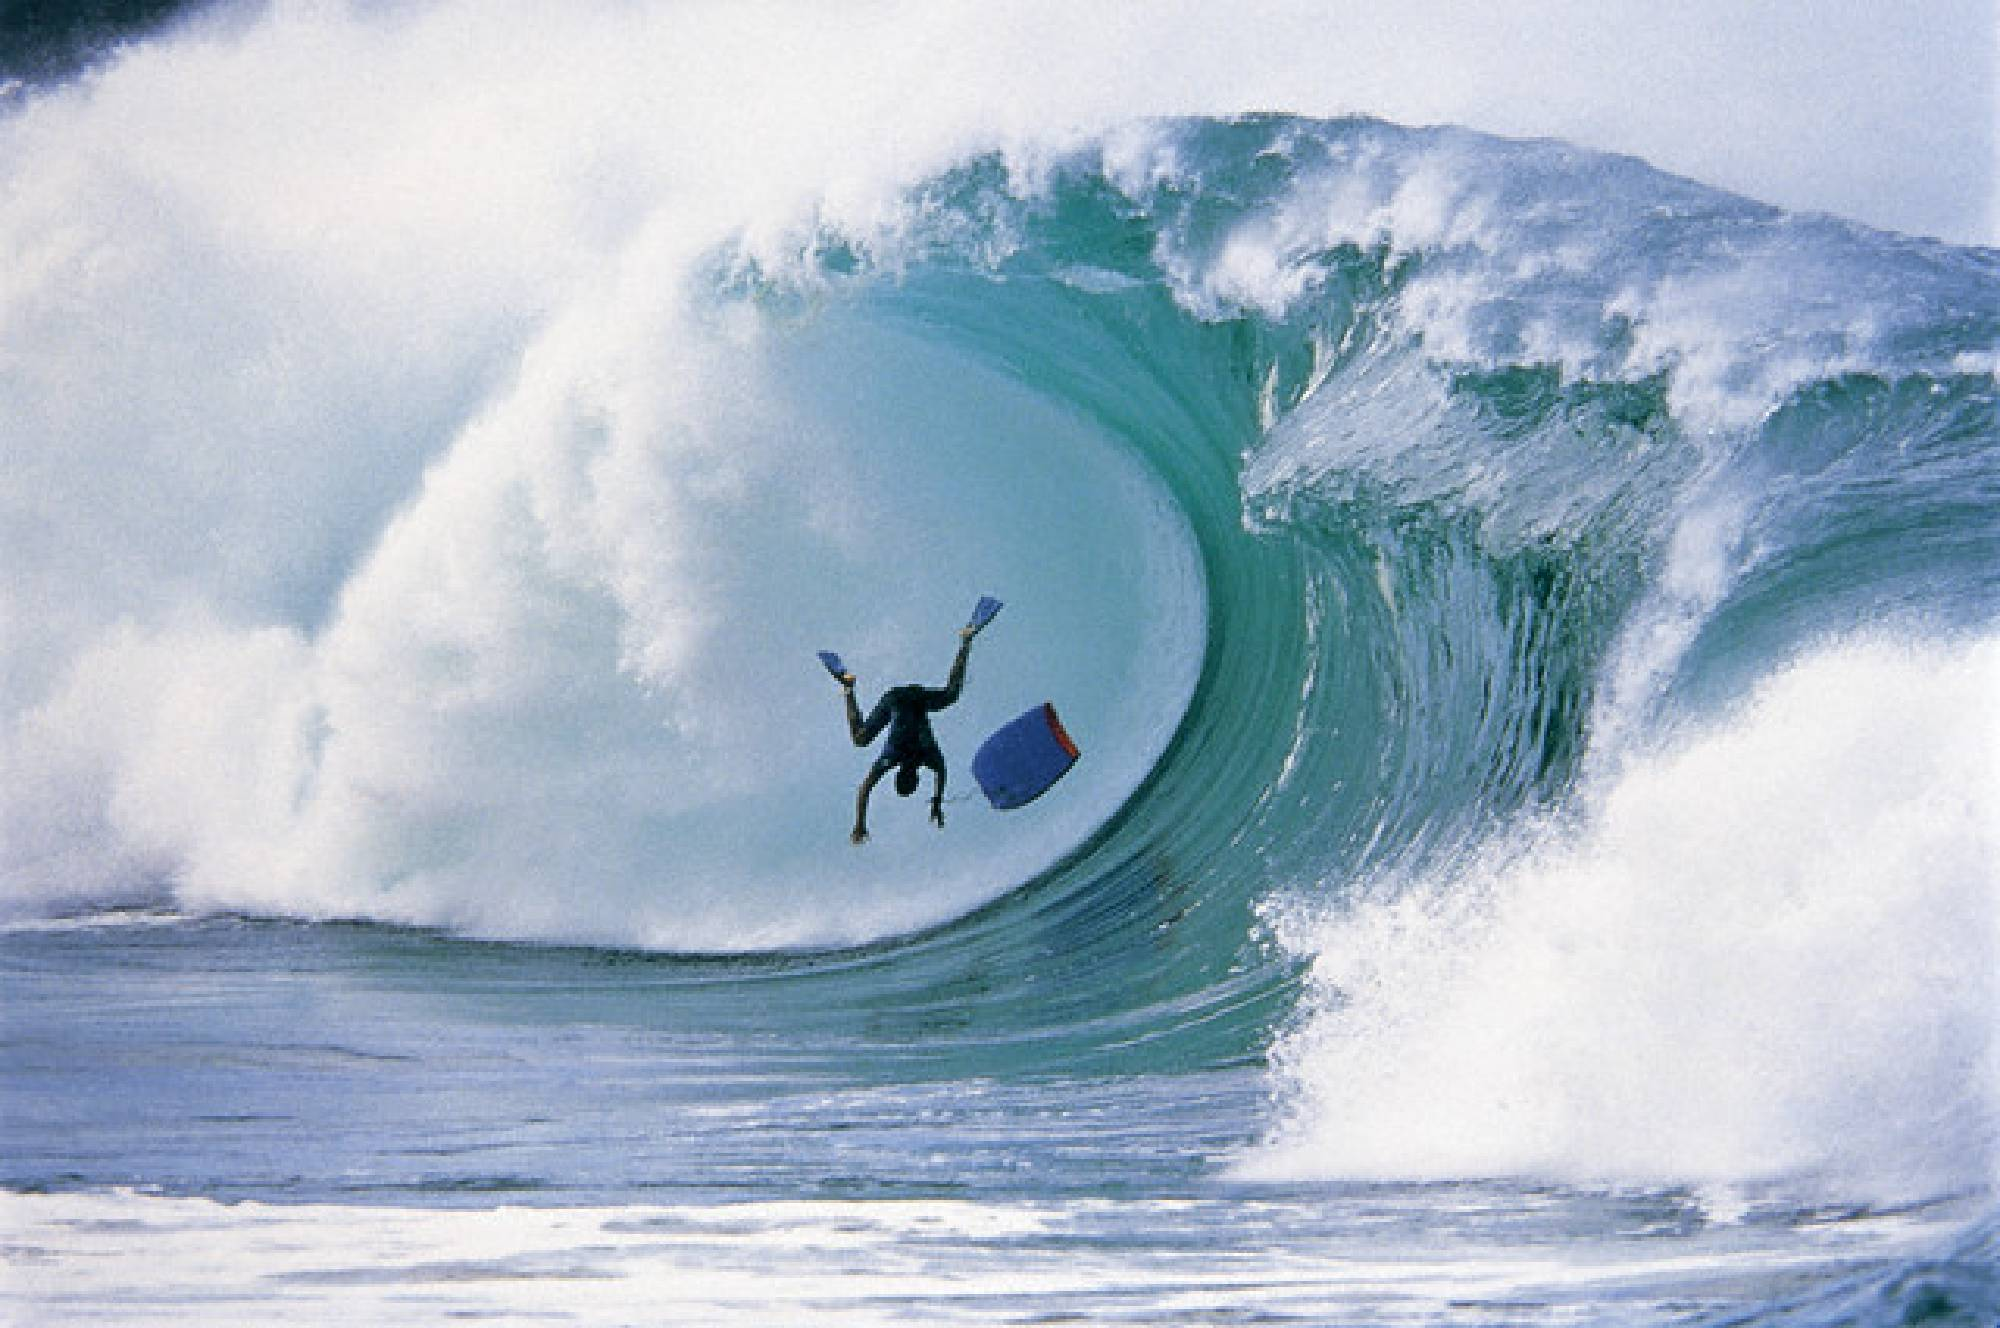 Tsunamis and surf have different origins